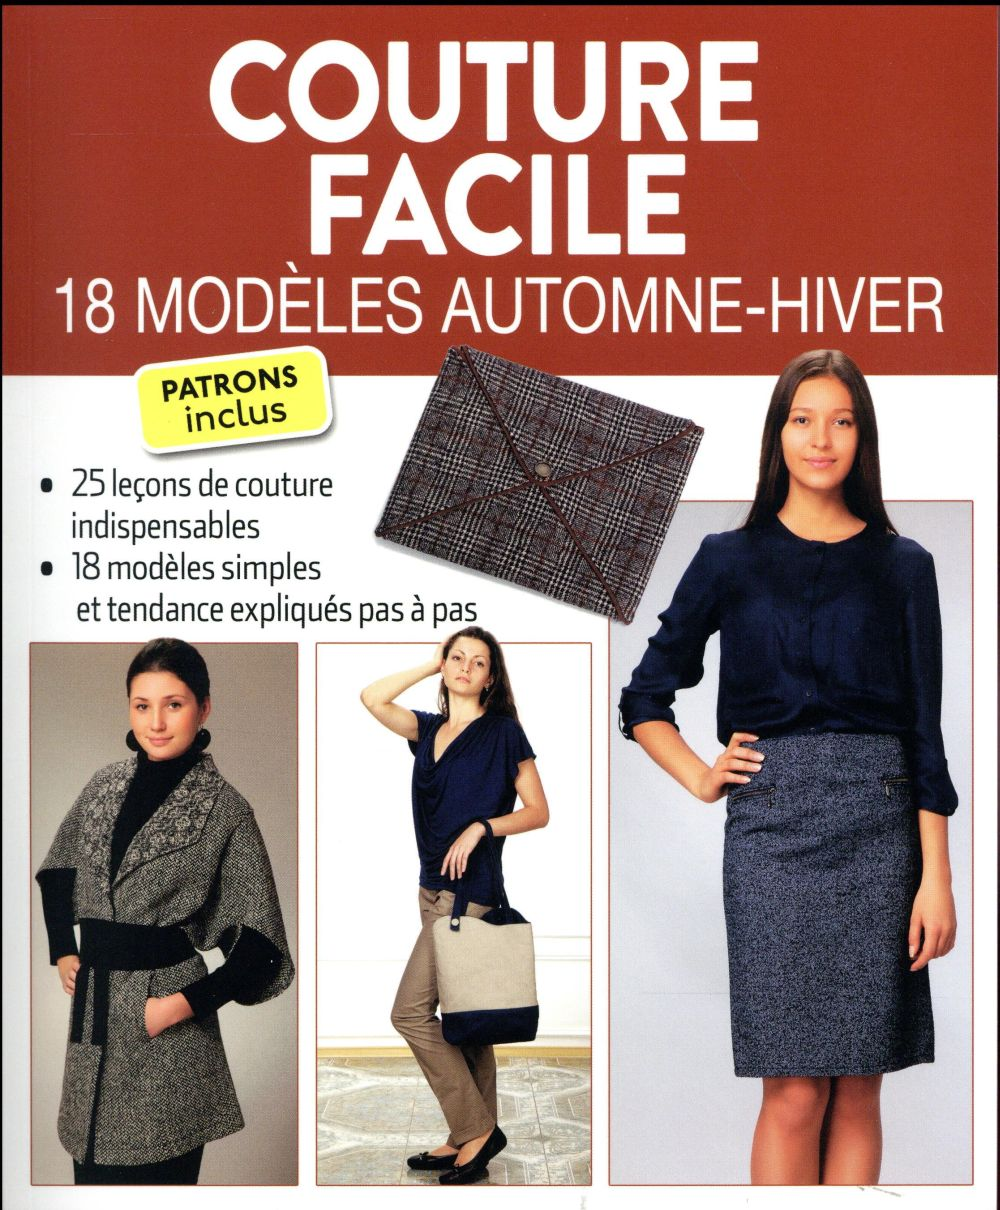 COUTURE FACILE - 18 MODELES AUTOMNE-HIVER